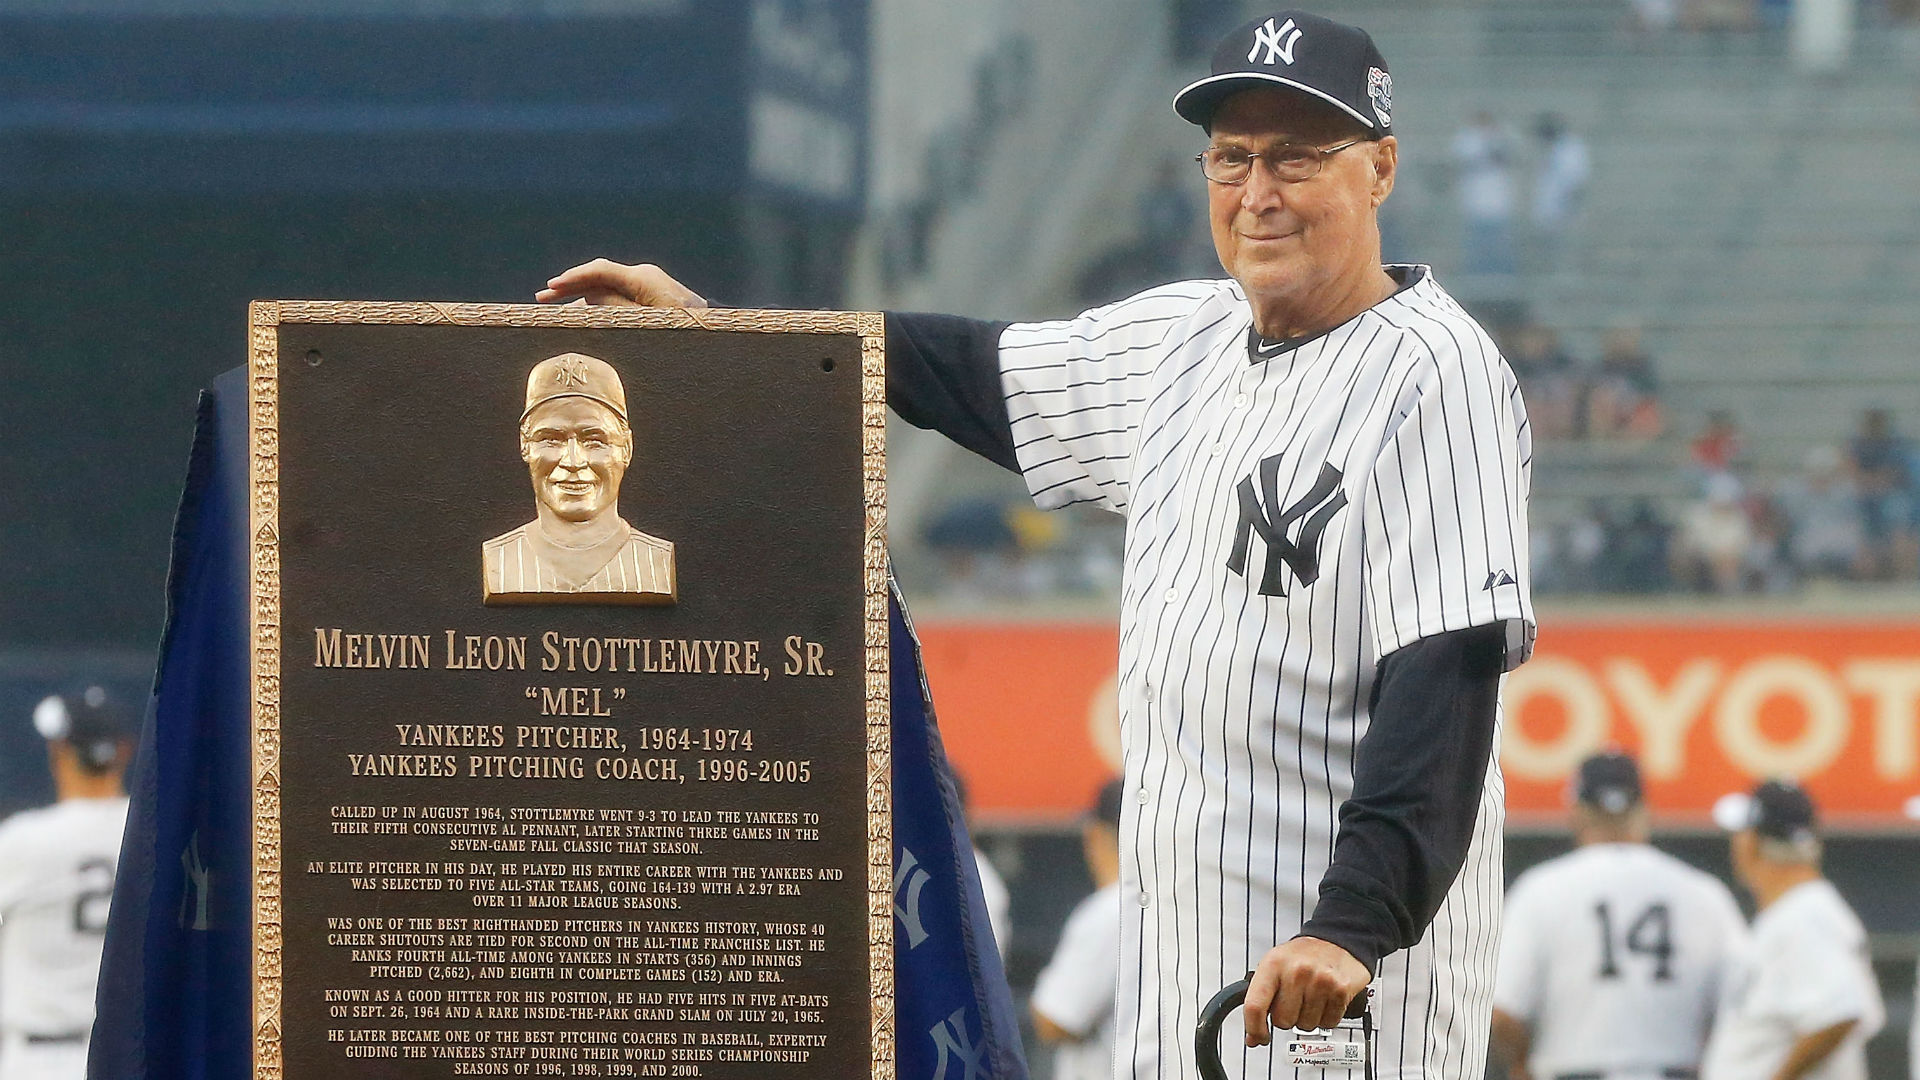 Longtime Yankees ace, pitching coach Mel Stottlemyre dies at 77